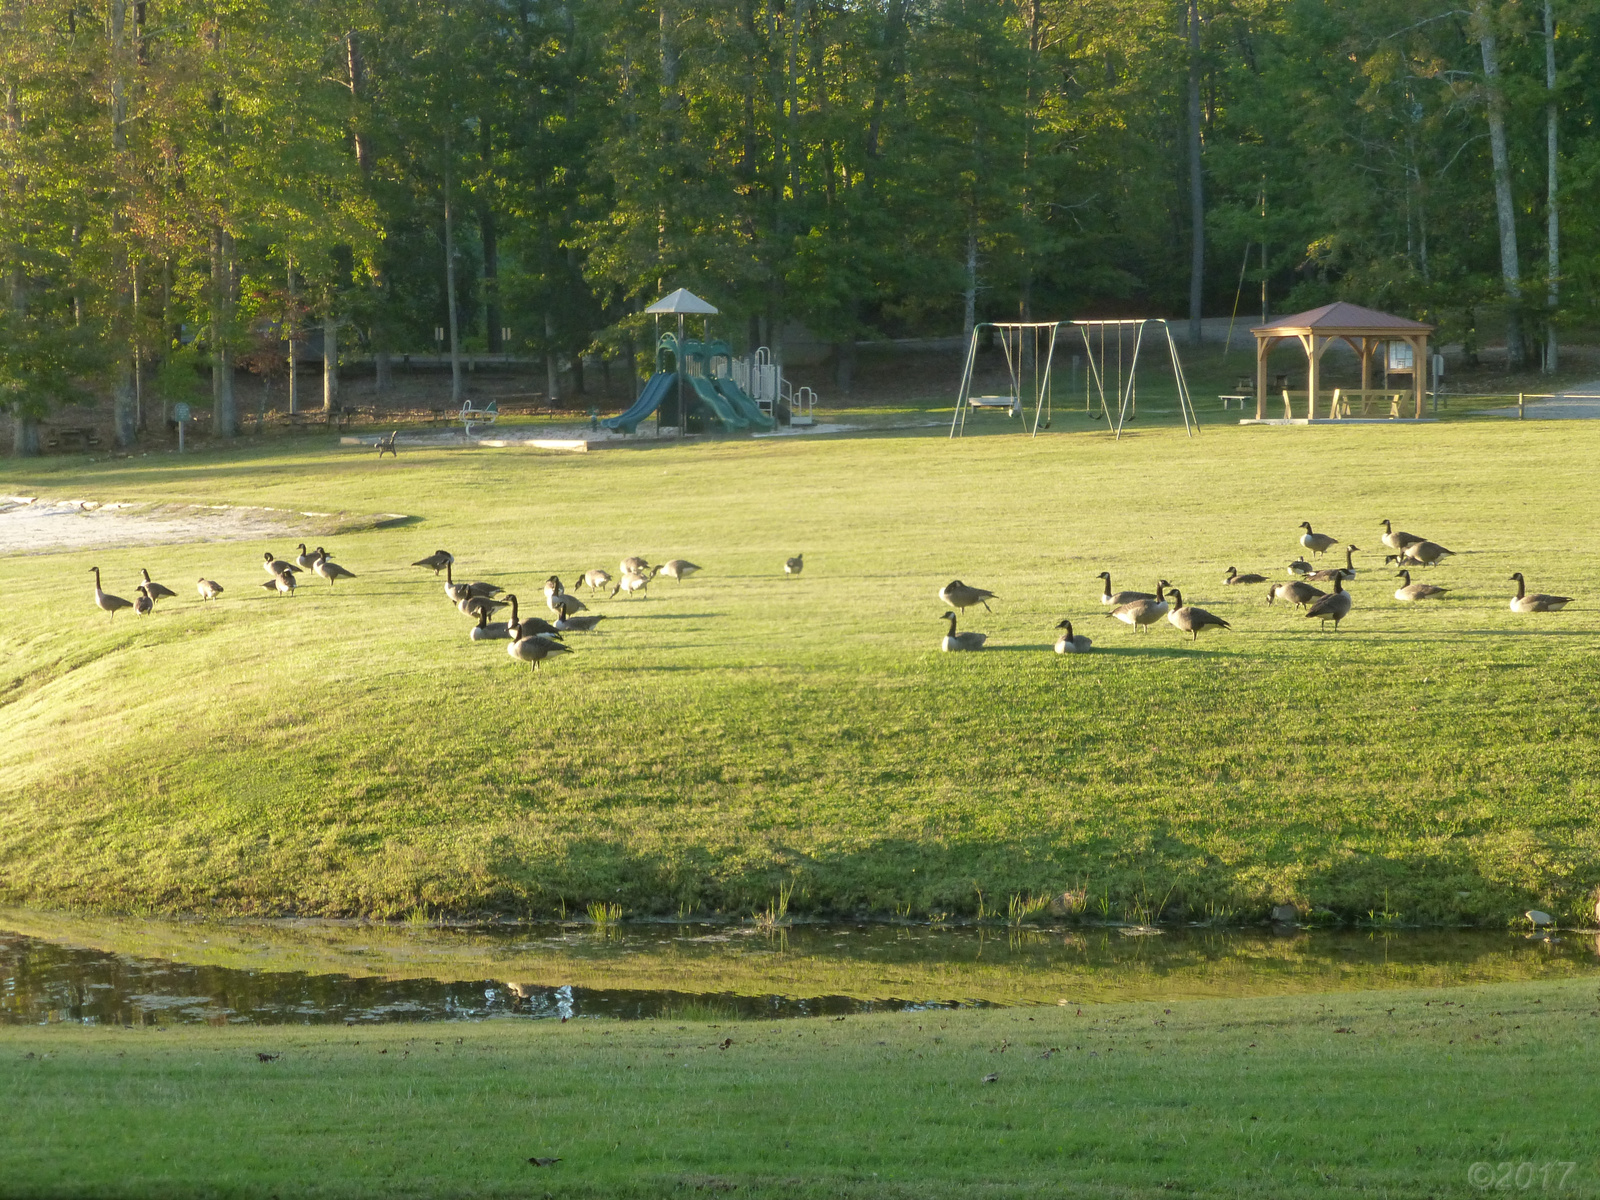 October 12, 2017 - Forty geese were enjoying the setting sun on the freshly mown grass near the beach.